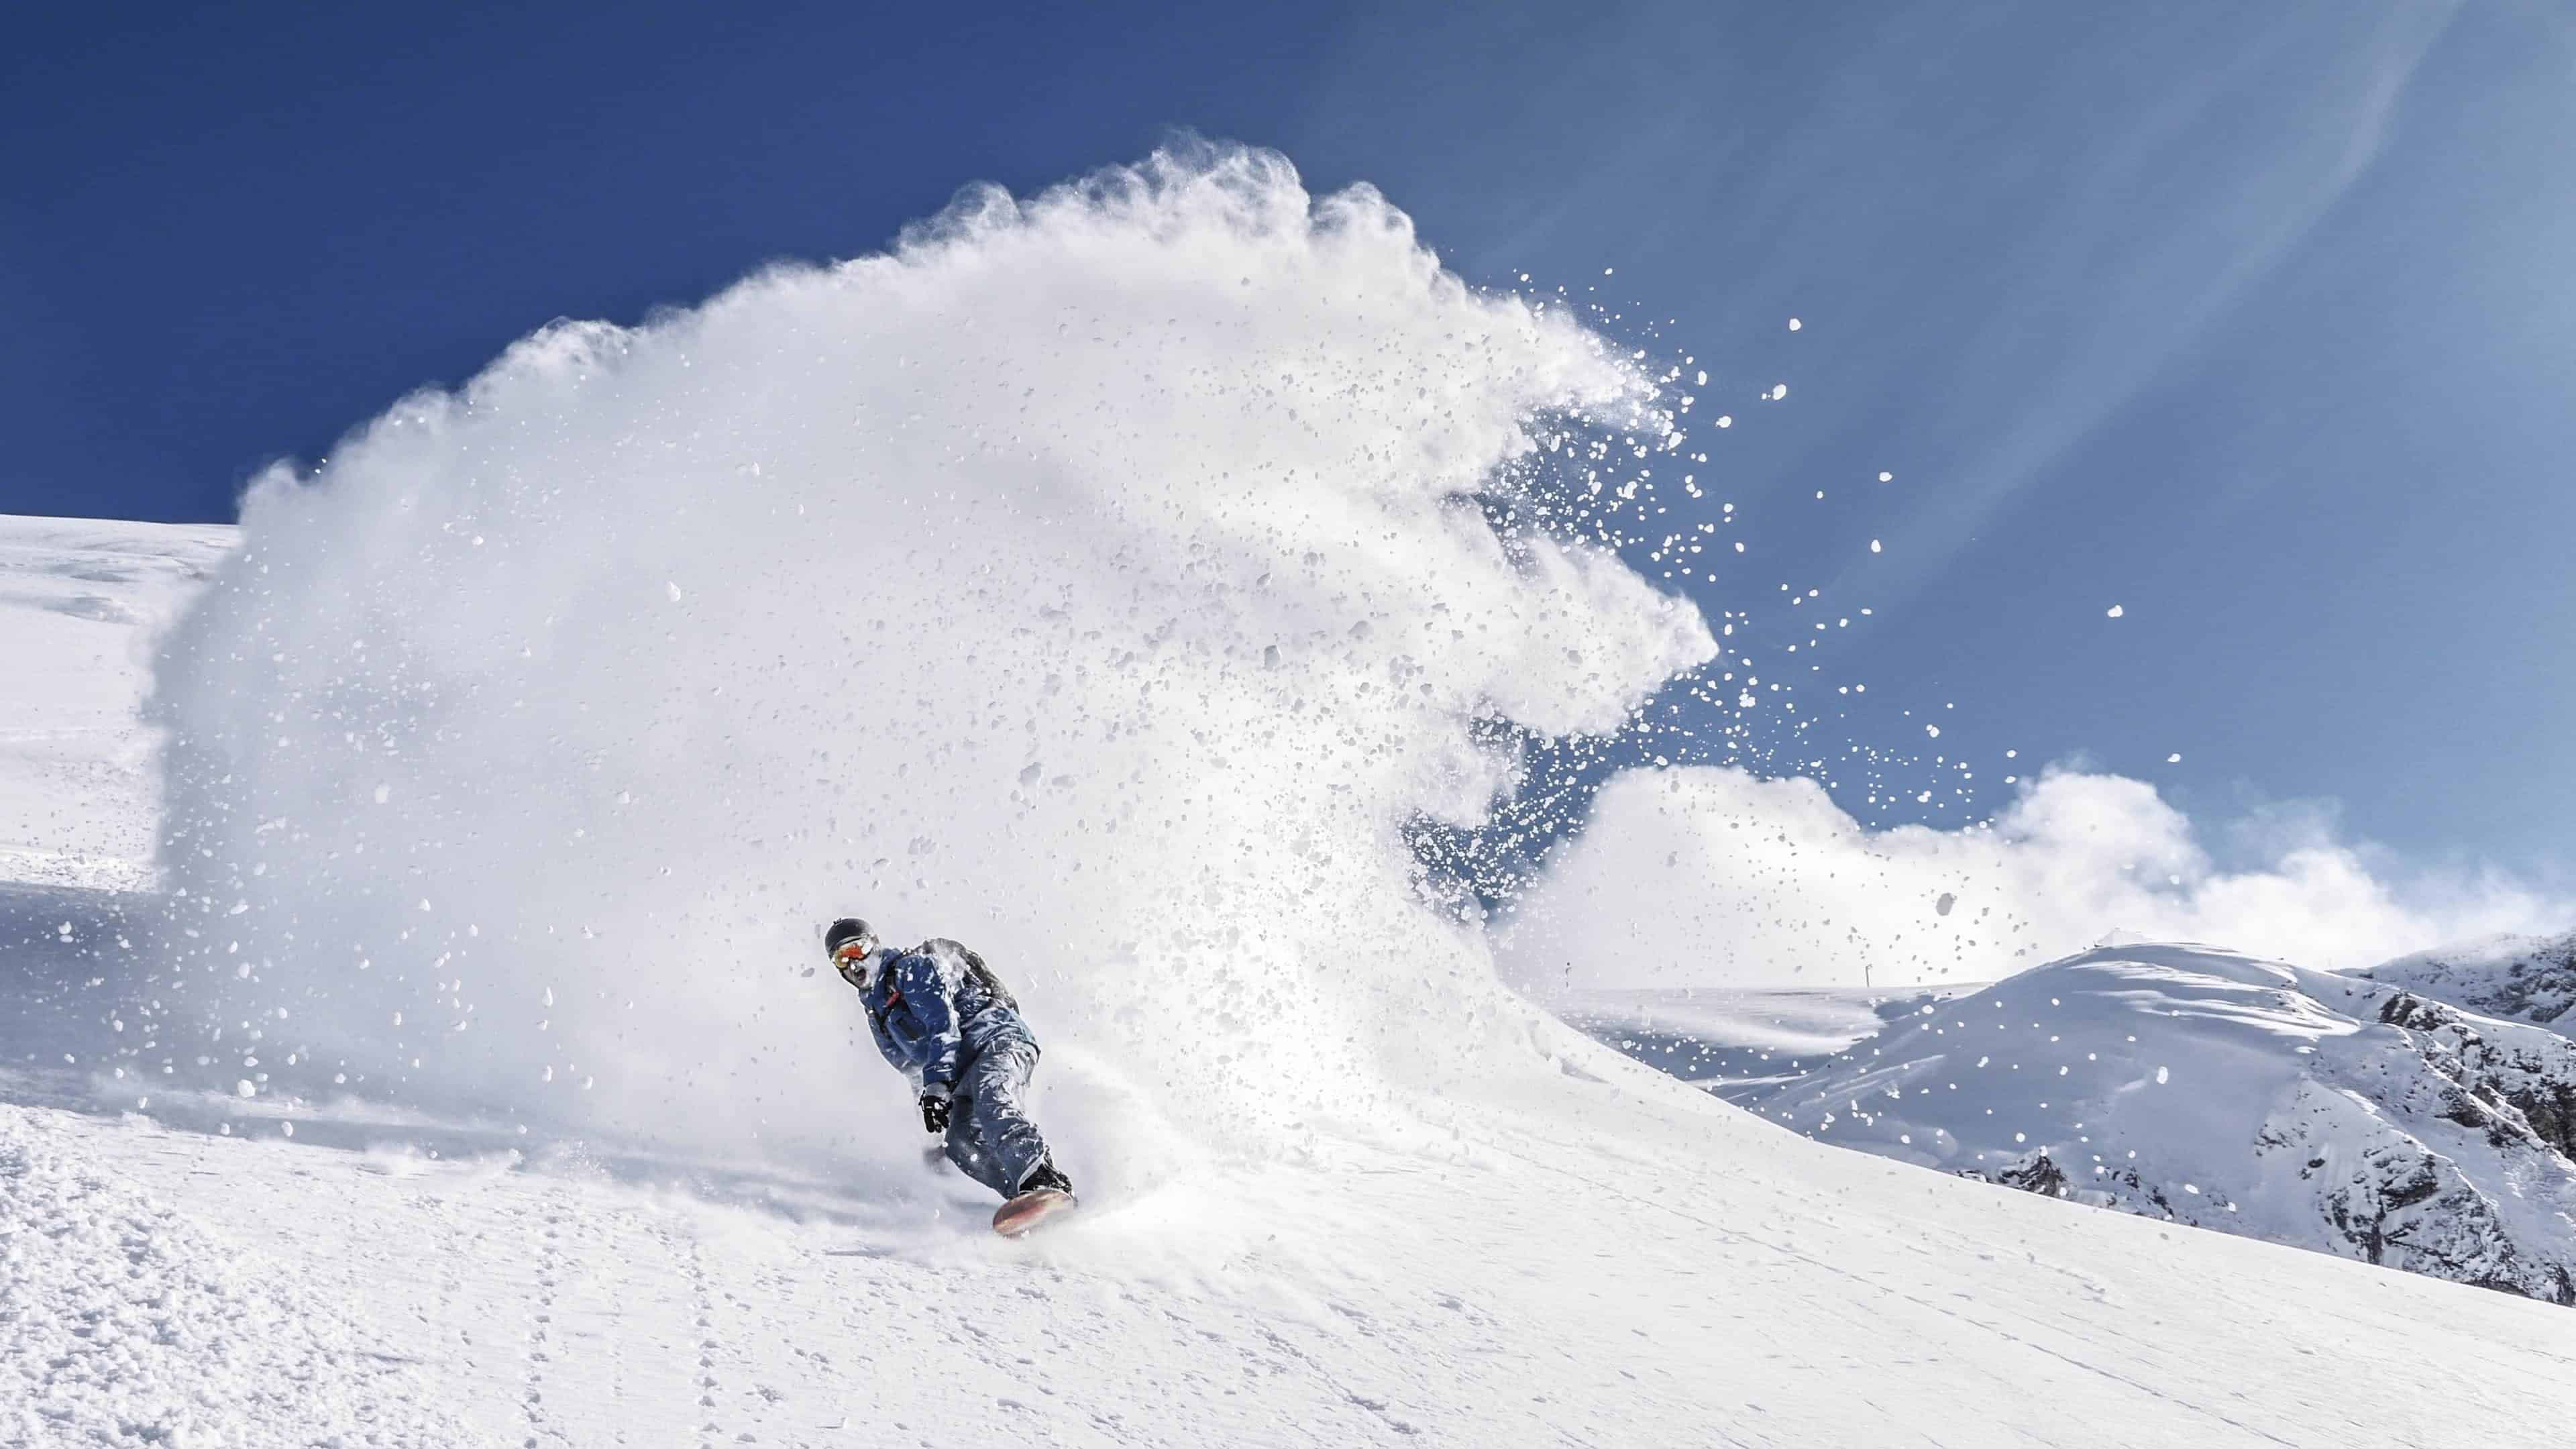 3840x2160 - Snowboarding Wallpapers 28